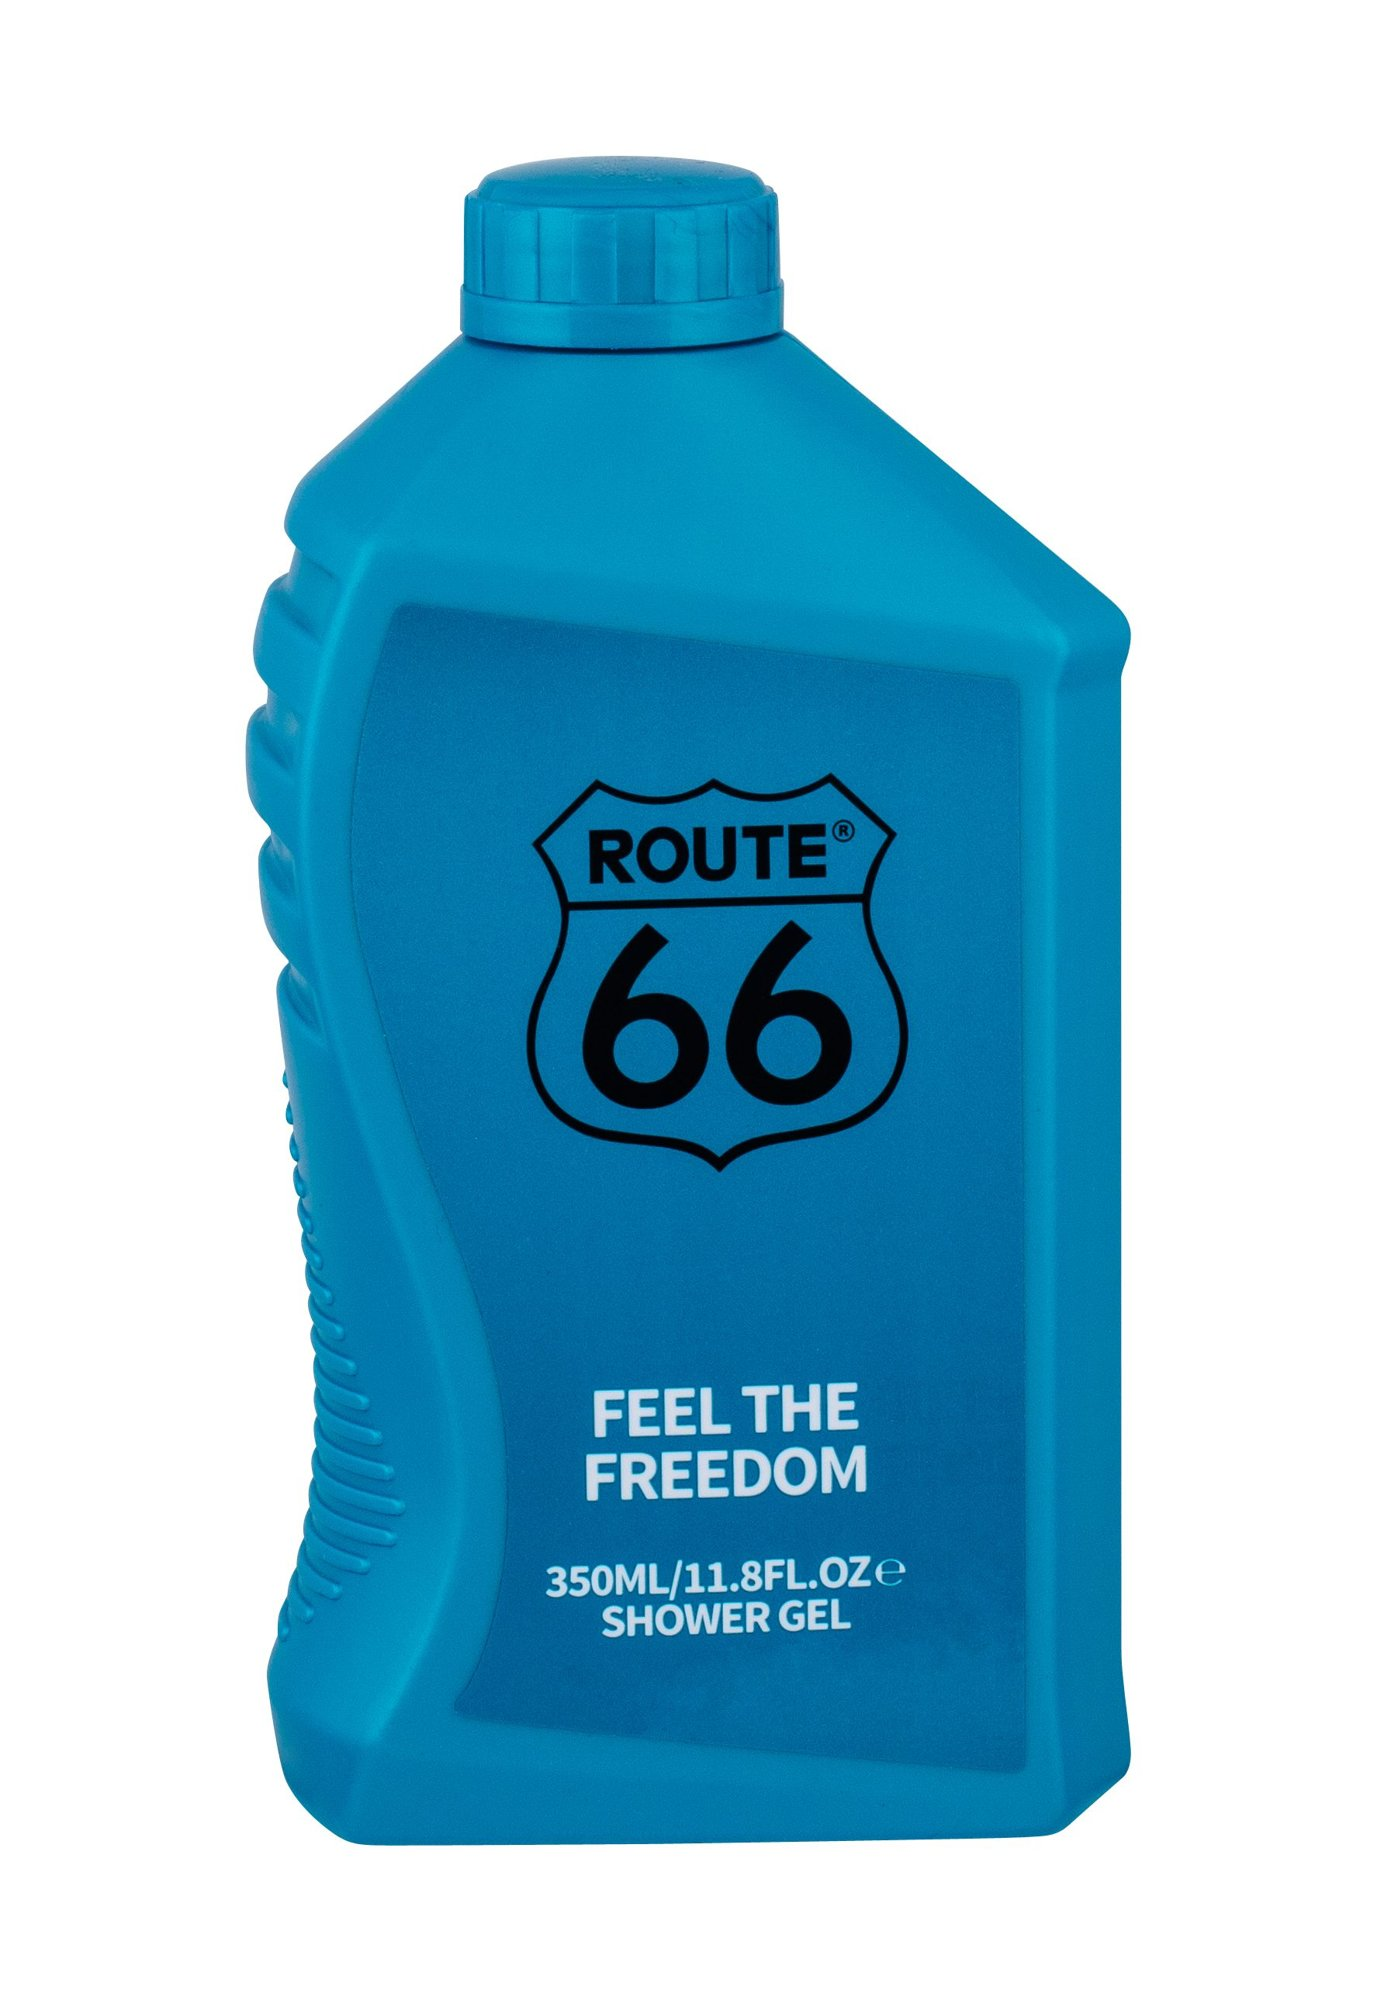 Route 66 Feel The Freedom Shower gel 350ml